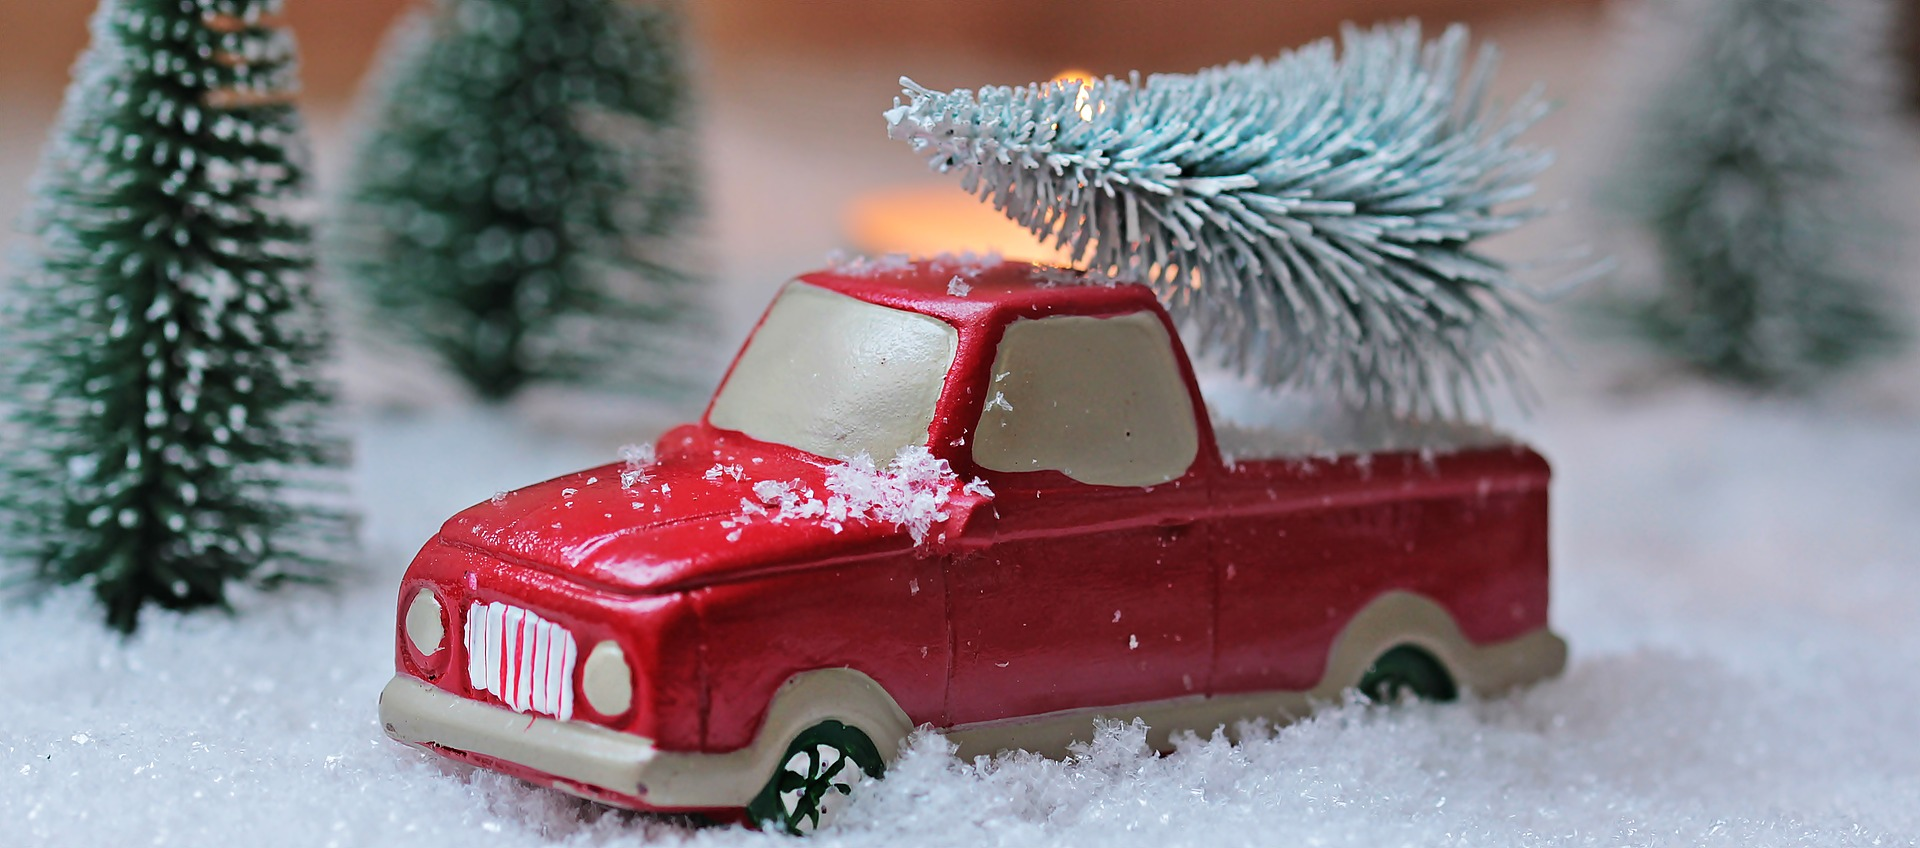 toy red truck in fake snow with miniature christmas trees